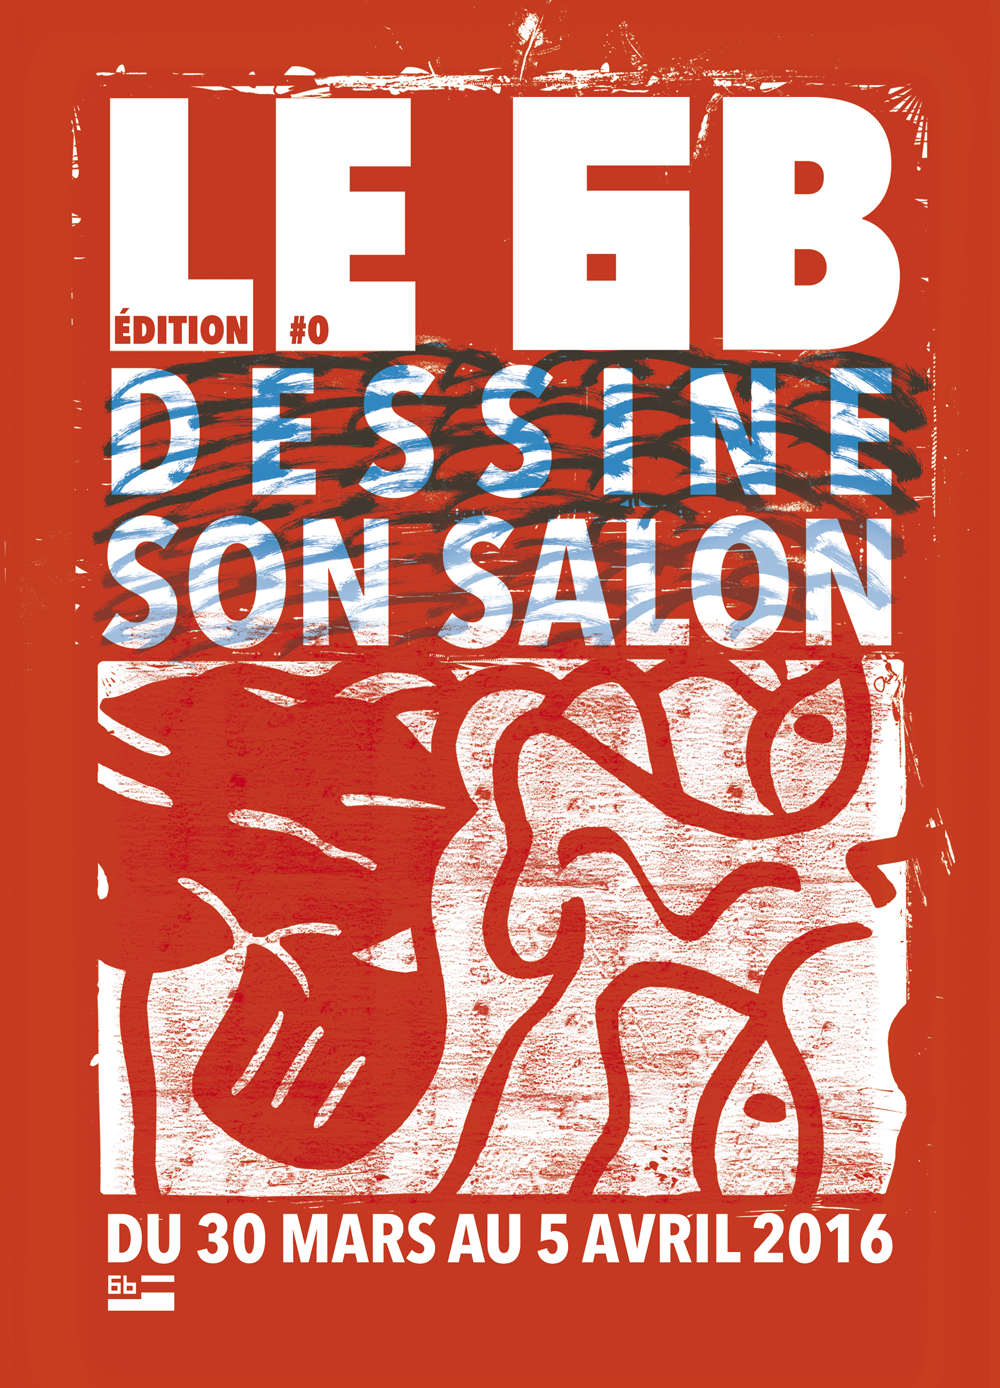 FLYER-A5--RECTO-LE-6B-DESSINE-SON-SALON---ROUGE